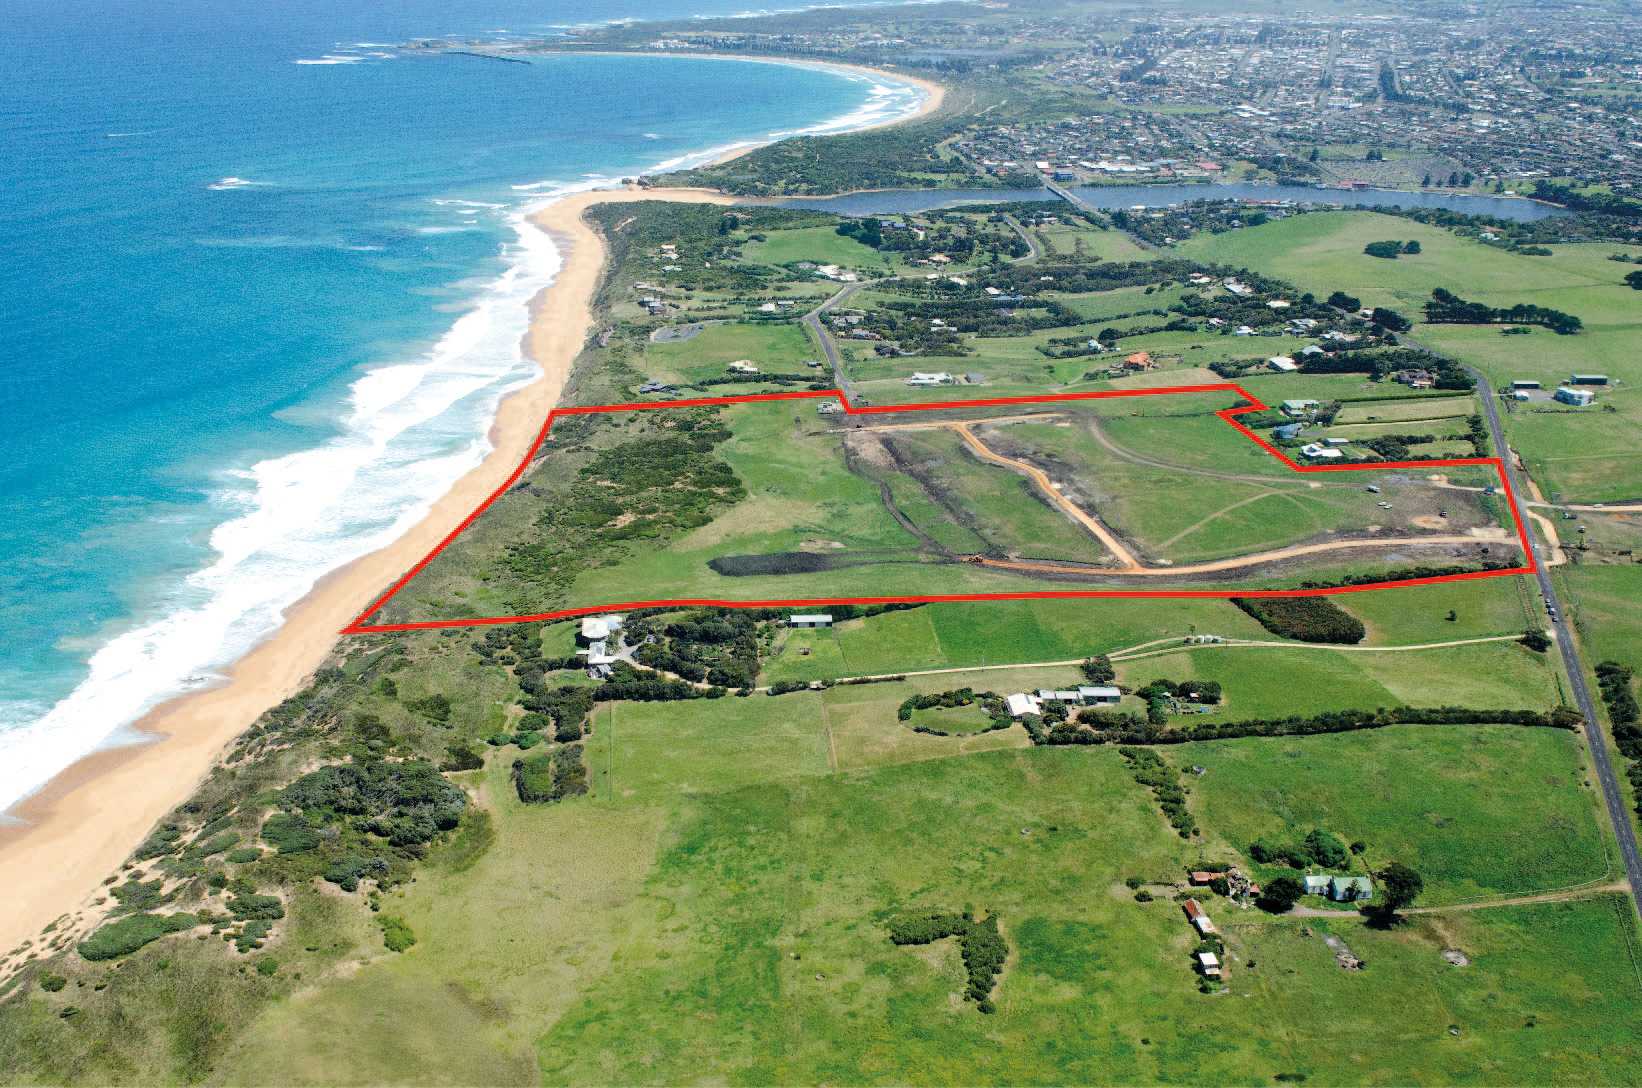 LOGANS BEACH PICTURE MARKED UP .jpg